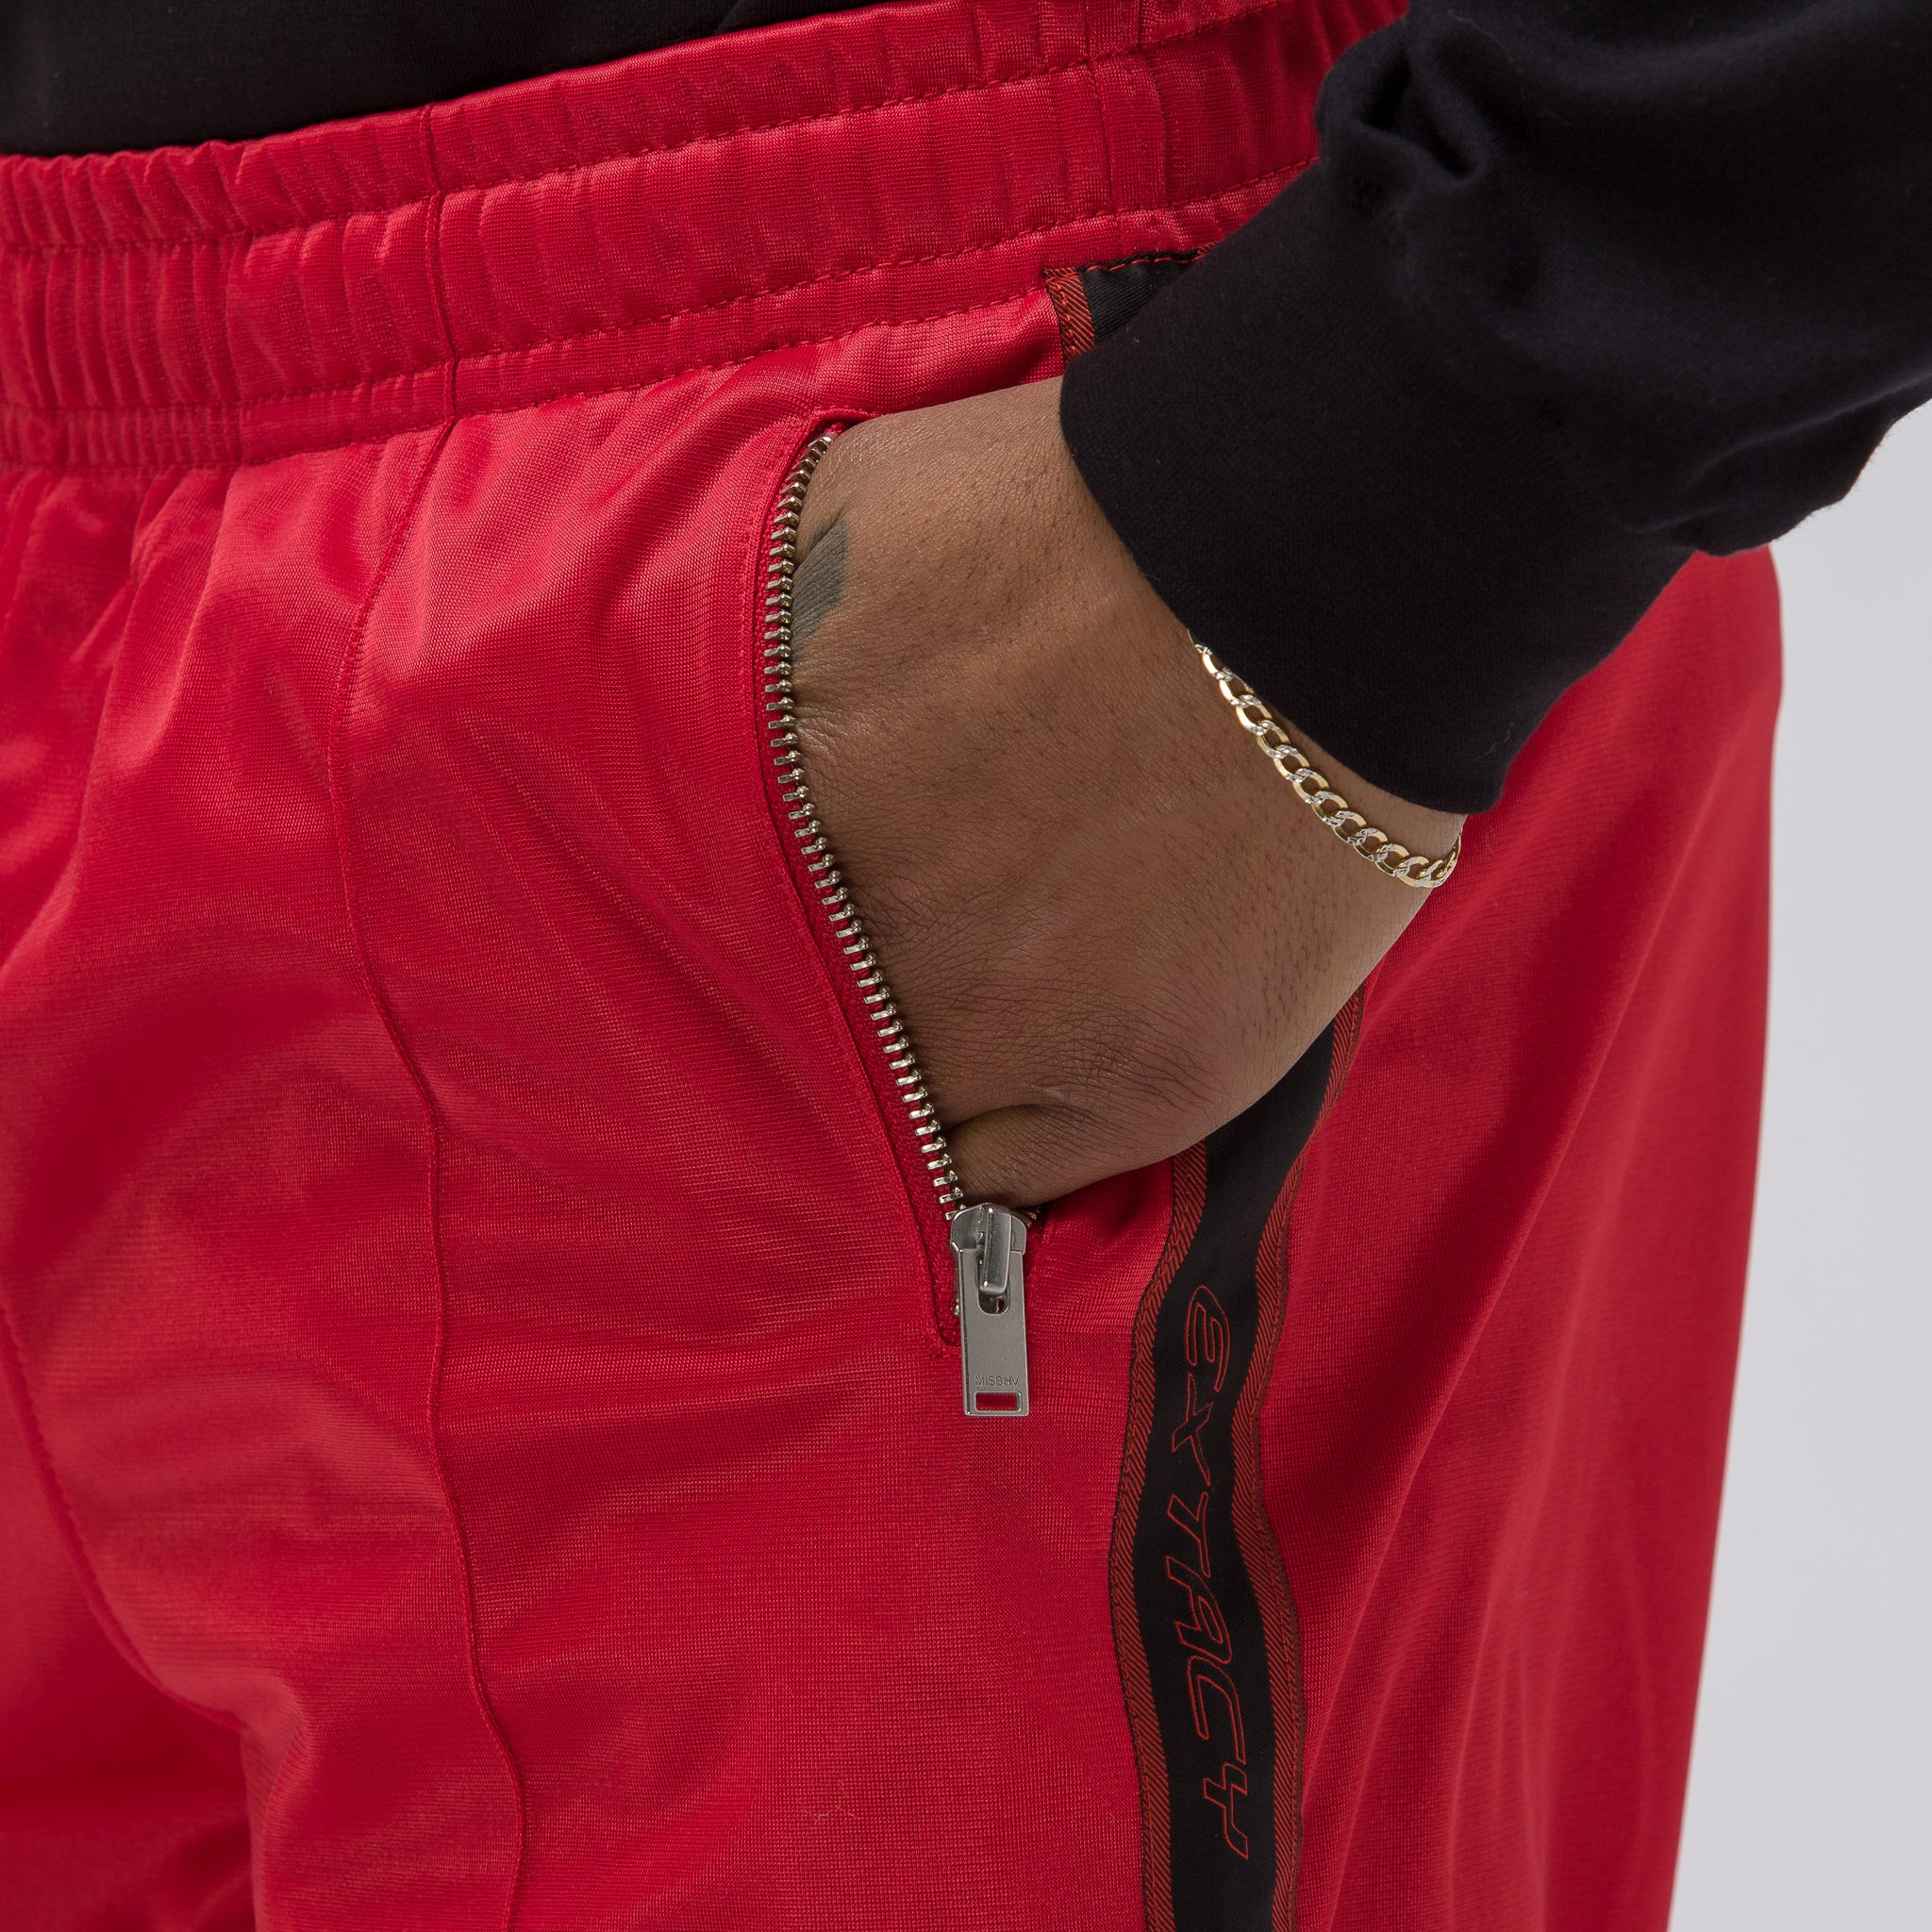 Extacy Tracksuit Pants in Red